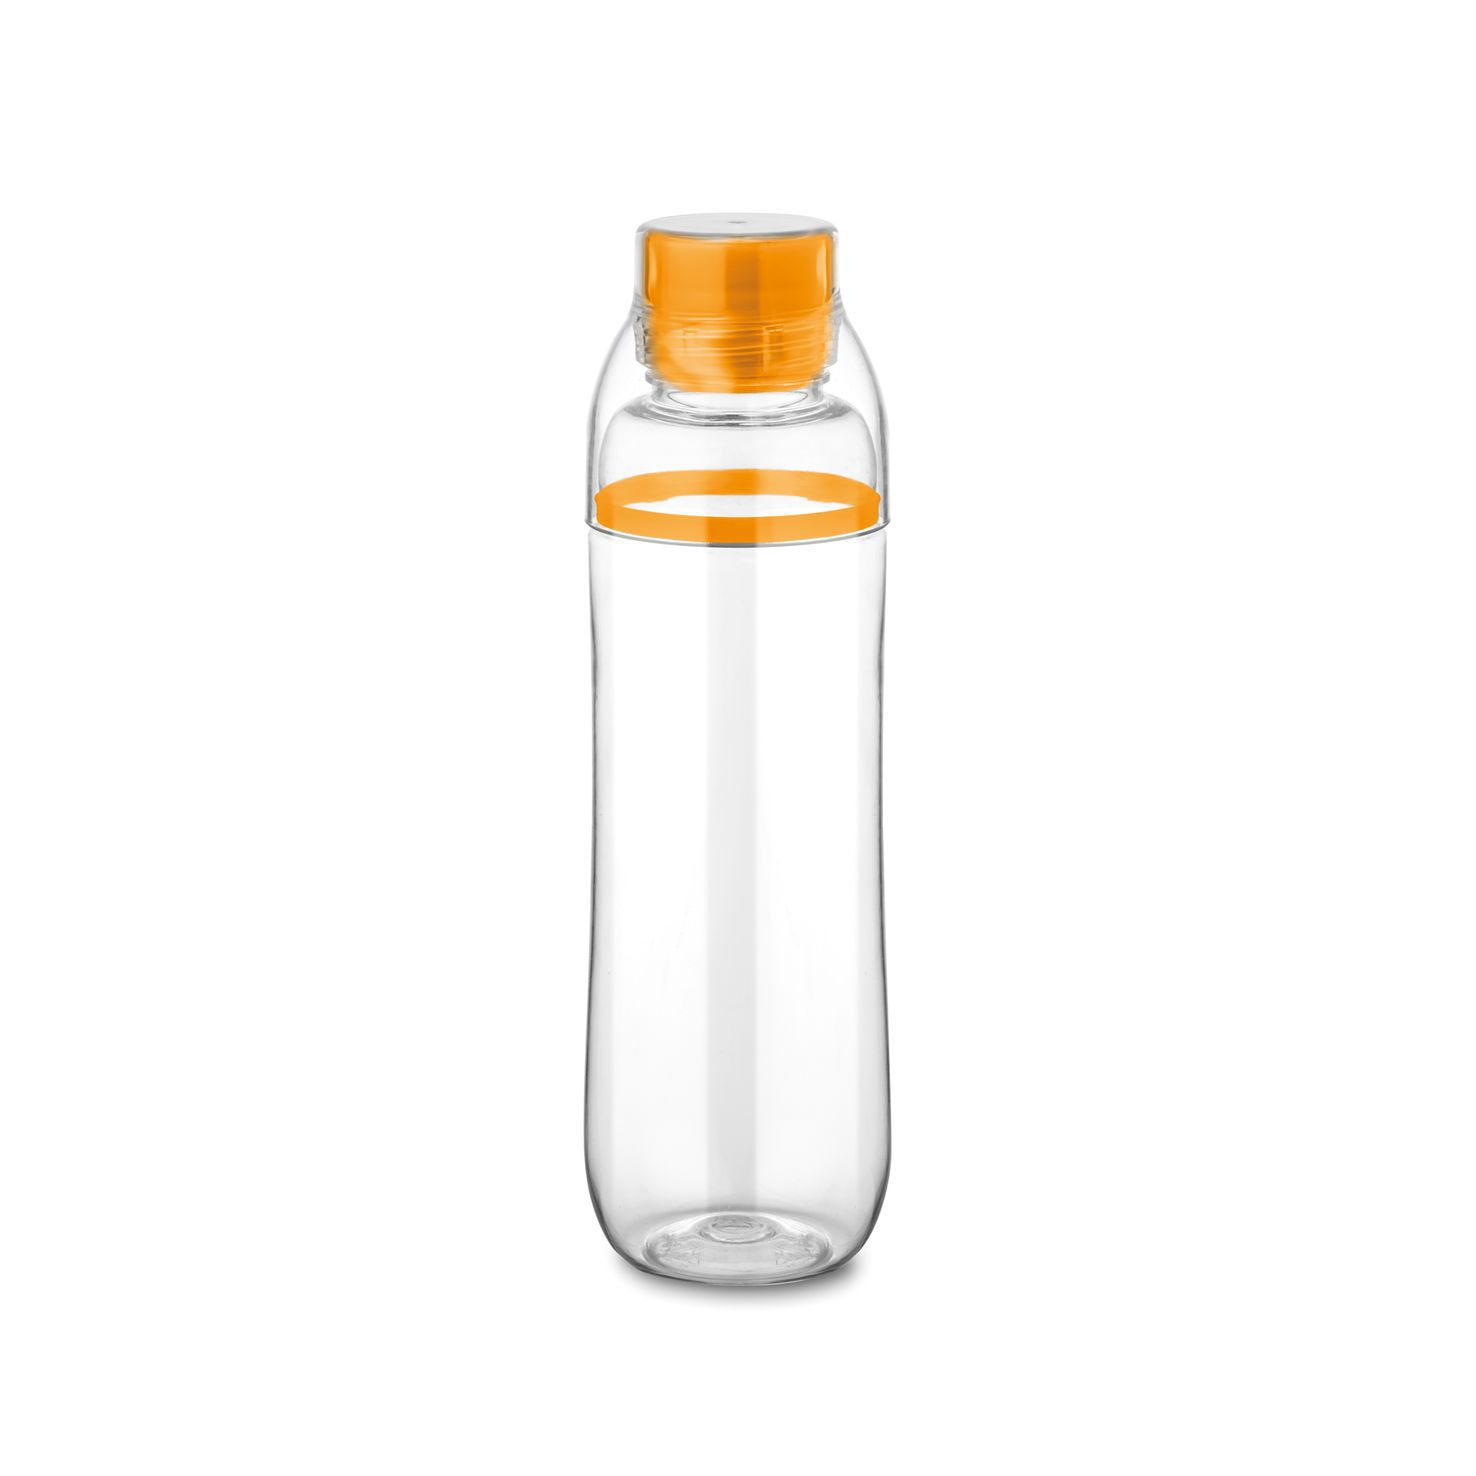 Oranje Waterfles van Tritan | 700 ml